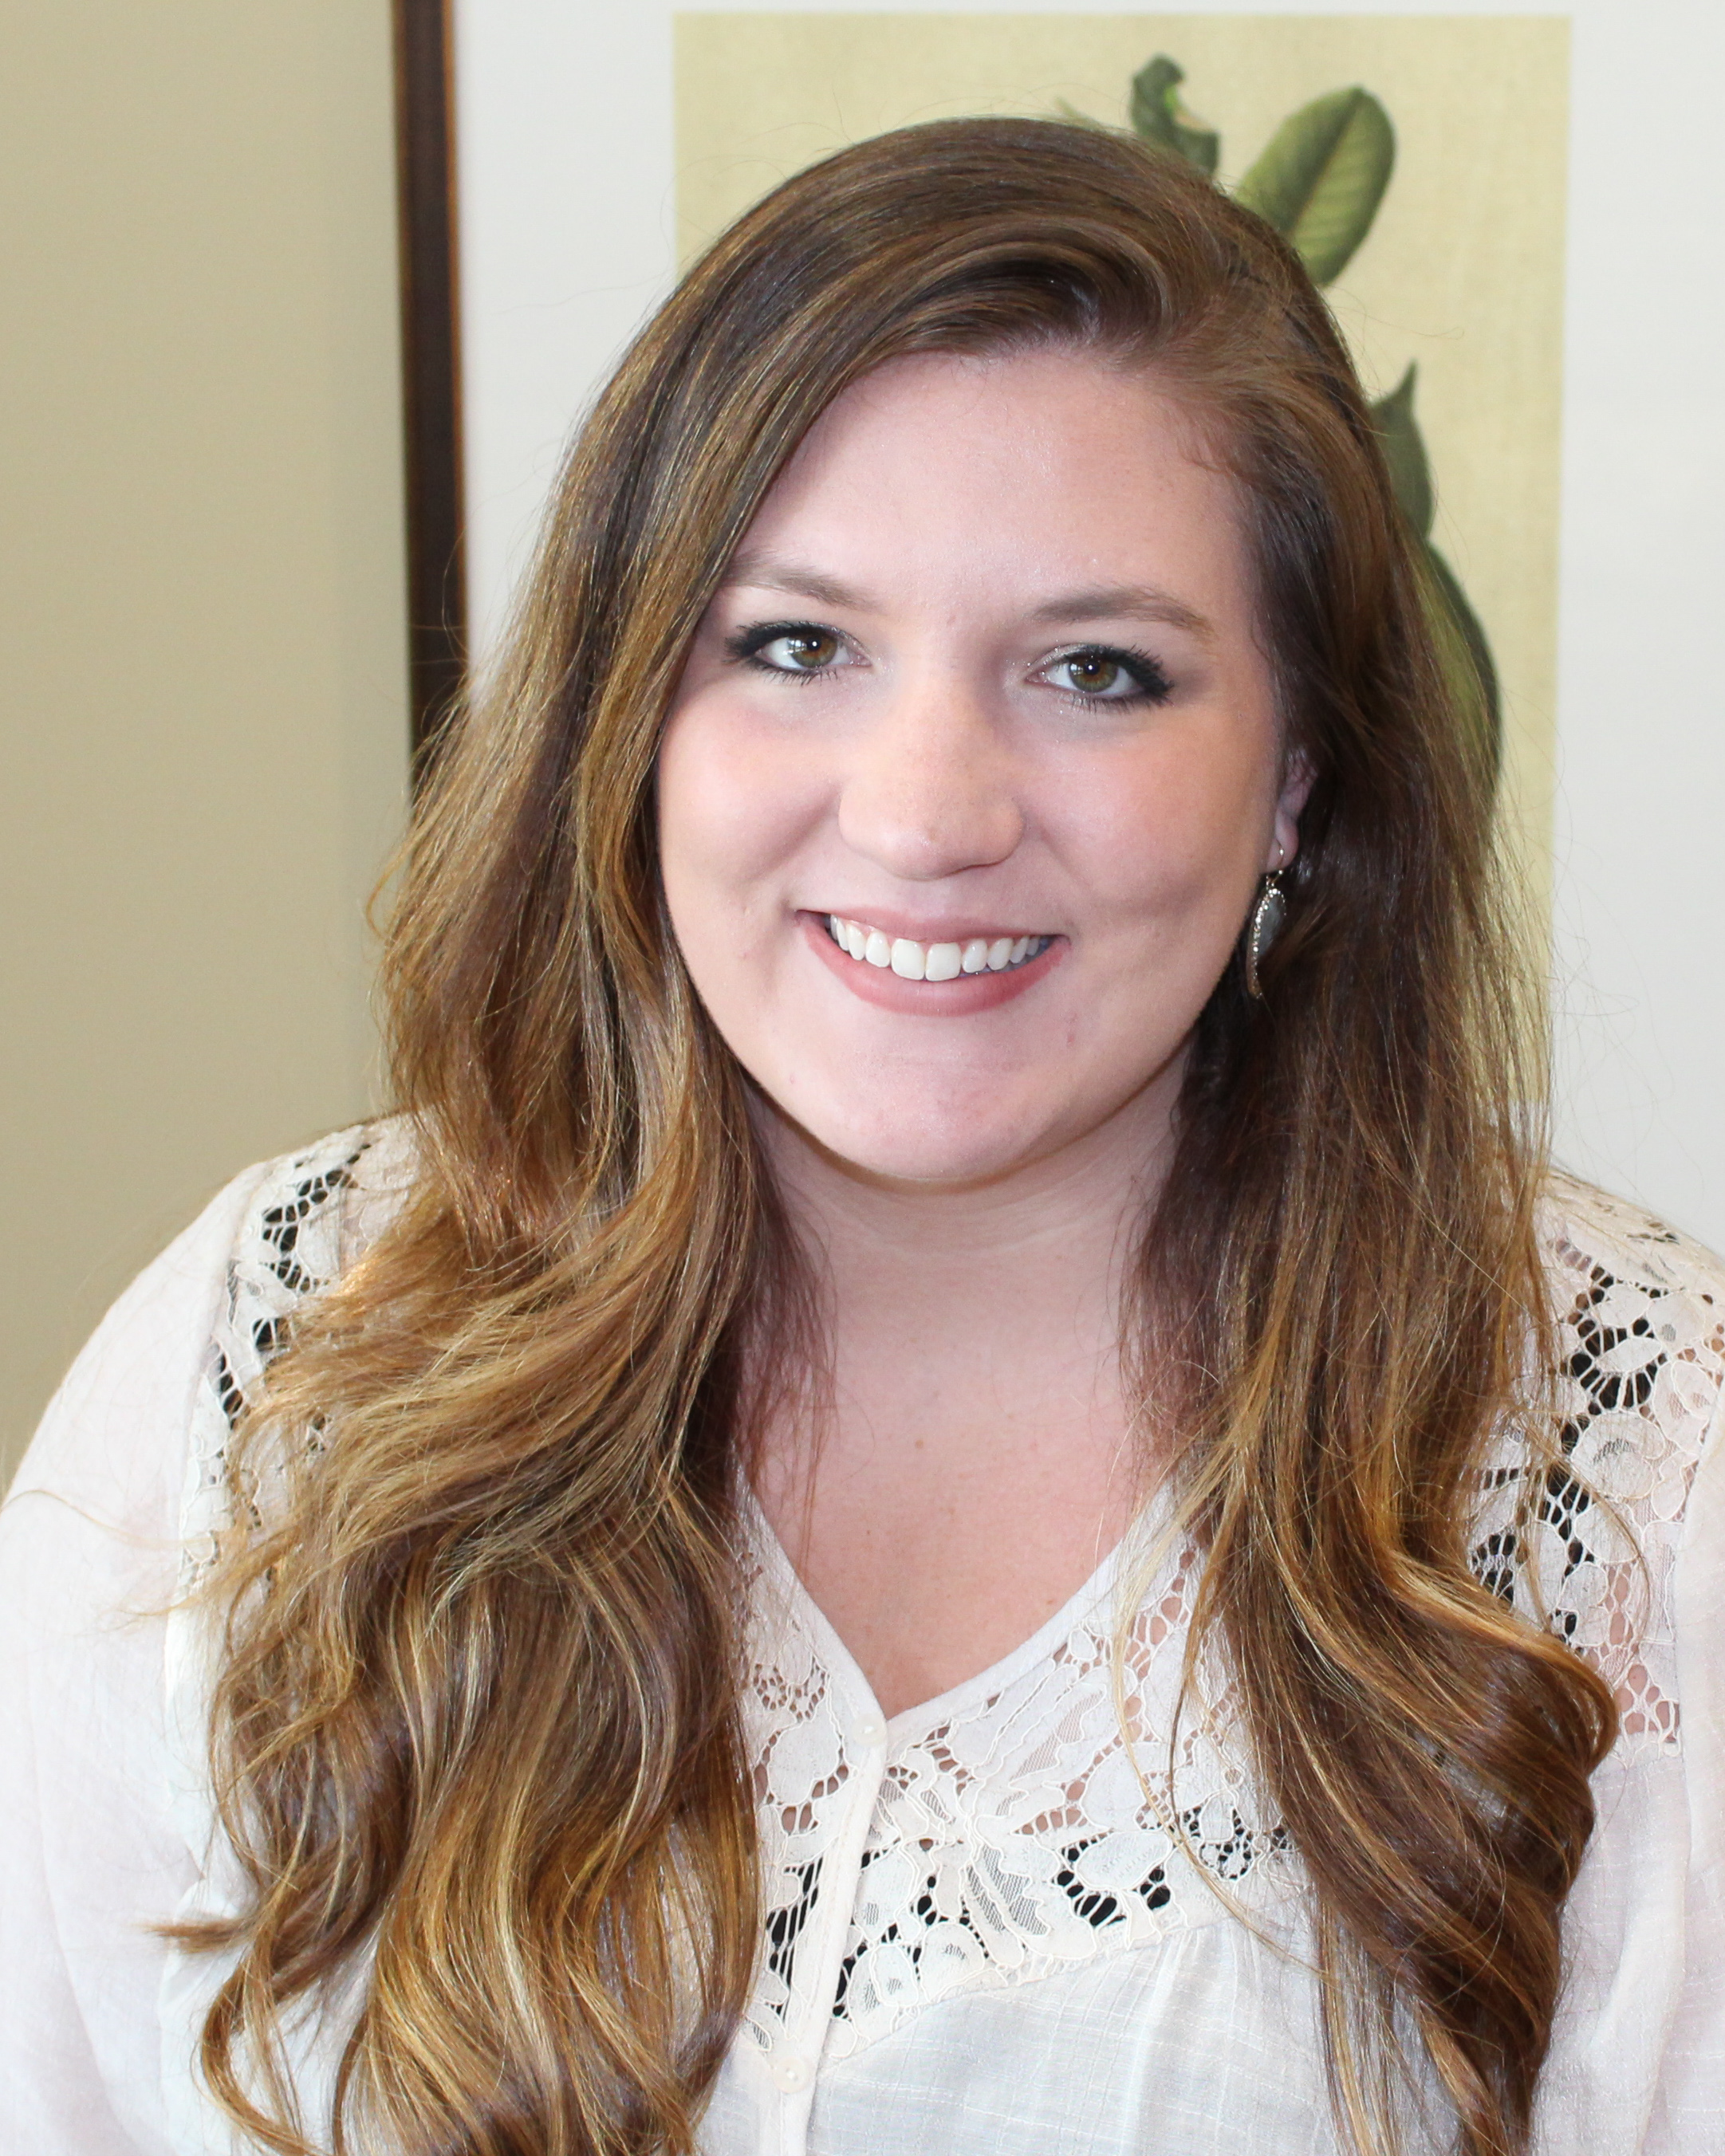 Taylor is the Jack-of-all-Trades: Colton Groome's utility player. Whether insurance, investment details, or internal operations, she's the behind-the-scenes guru of systems and processes.